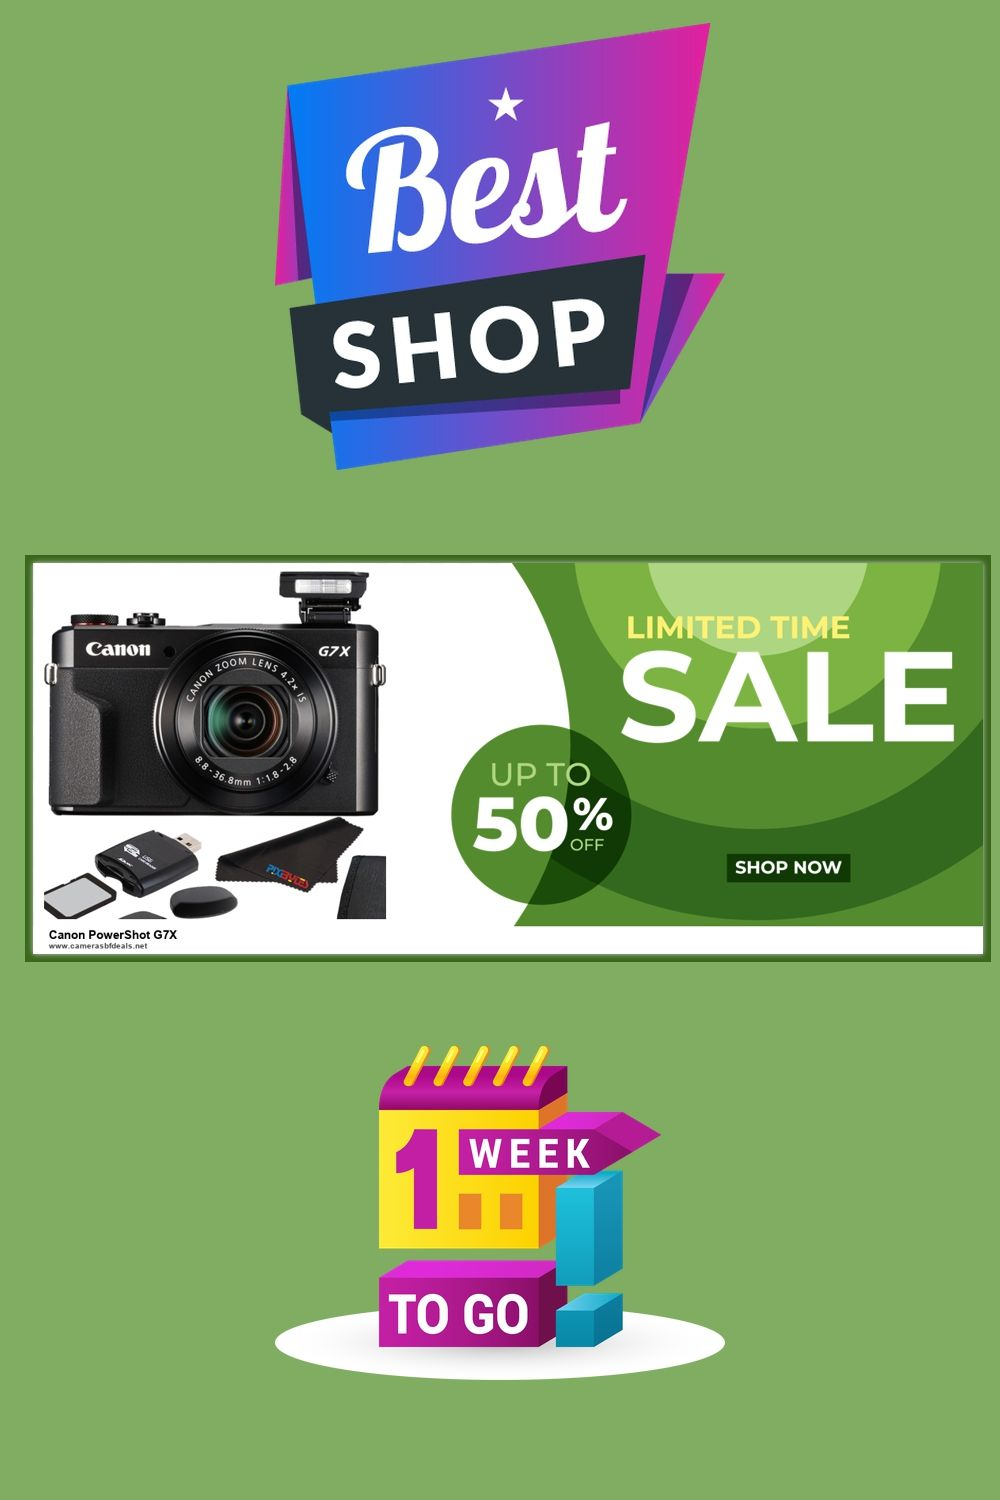 Top 9 Canon Powershot G7x Black Friday And Cyber Monday Deals 2020 In 2020 Powershot Canon Powershot Black Friday